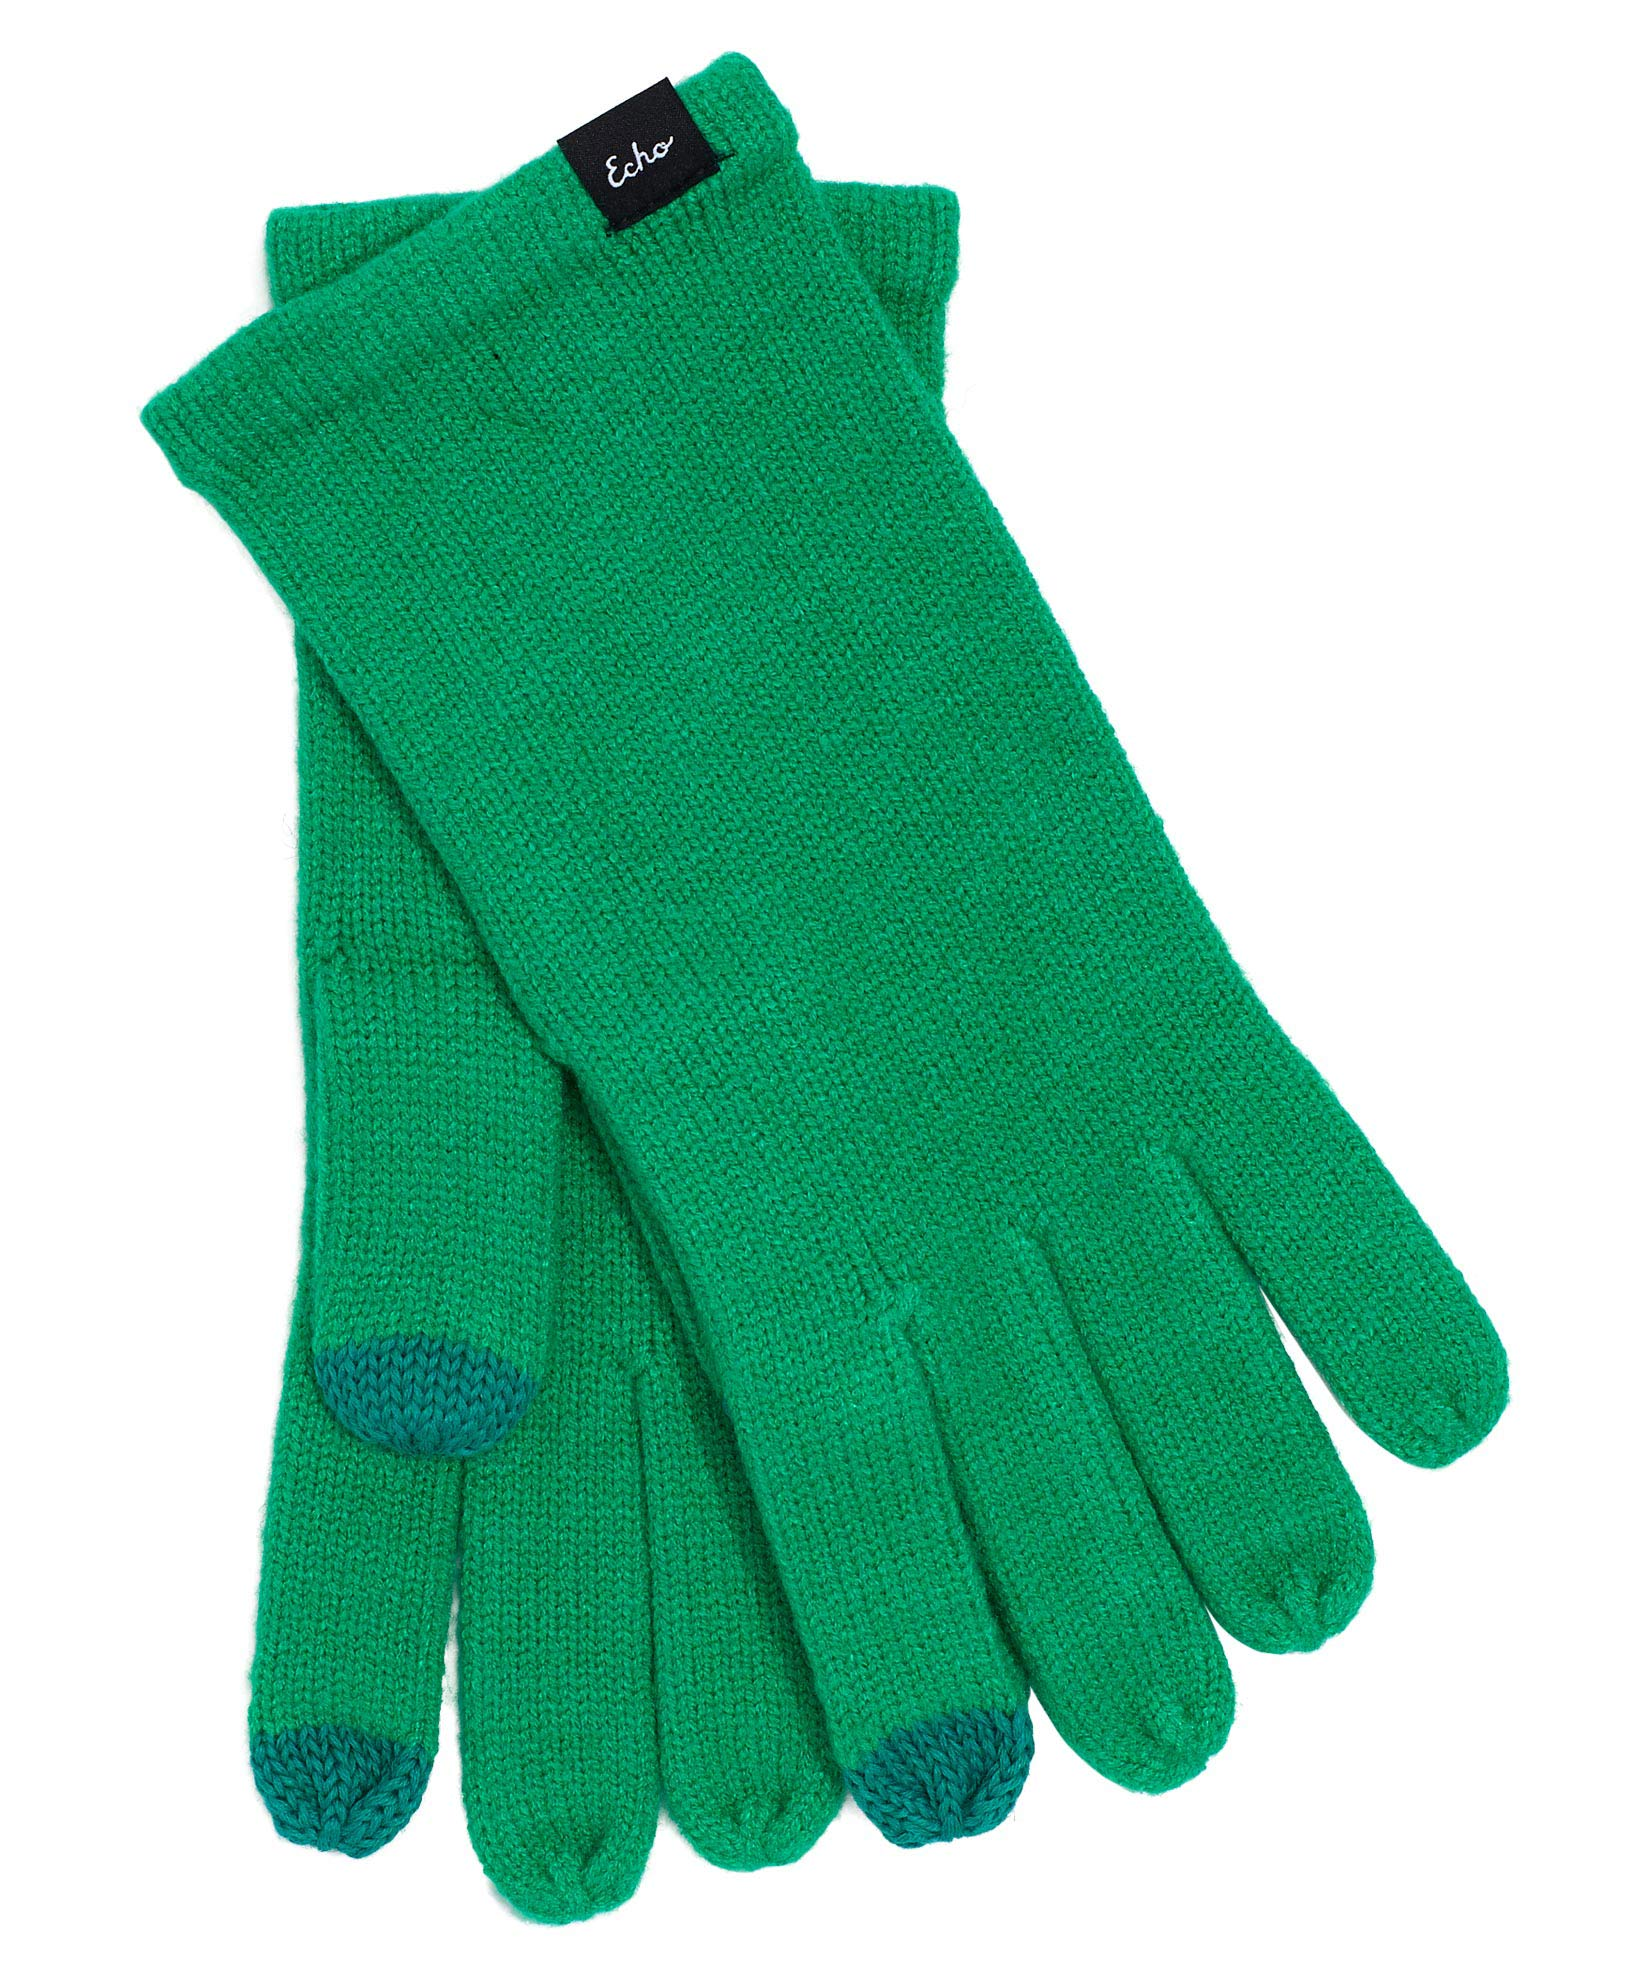 Pine - Echo Knit Touch Glove